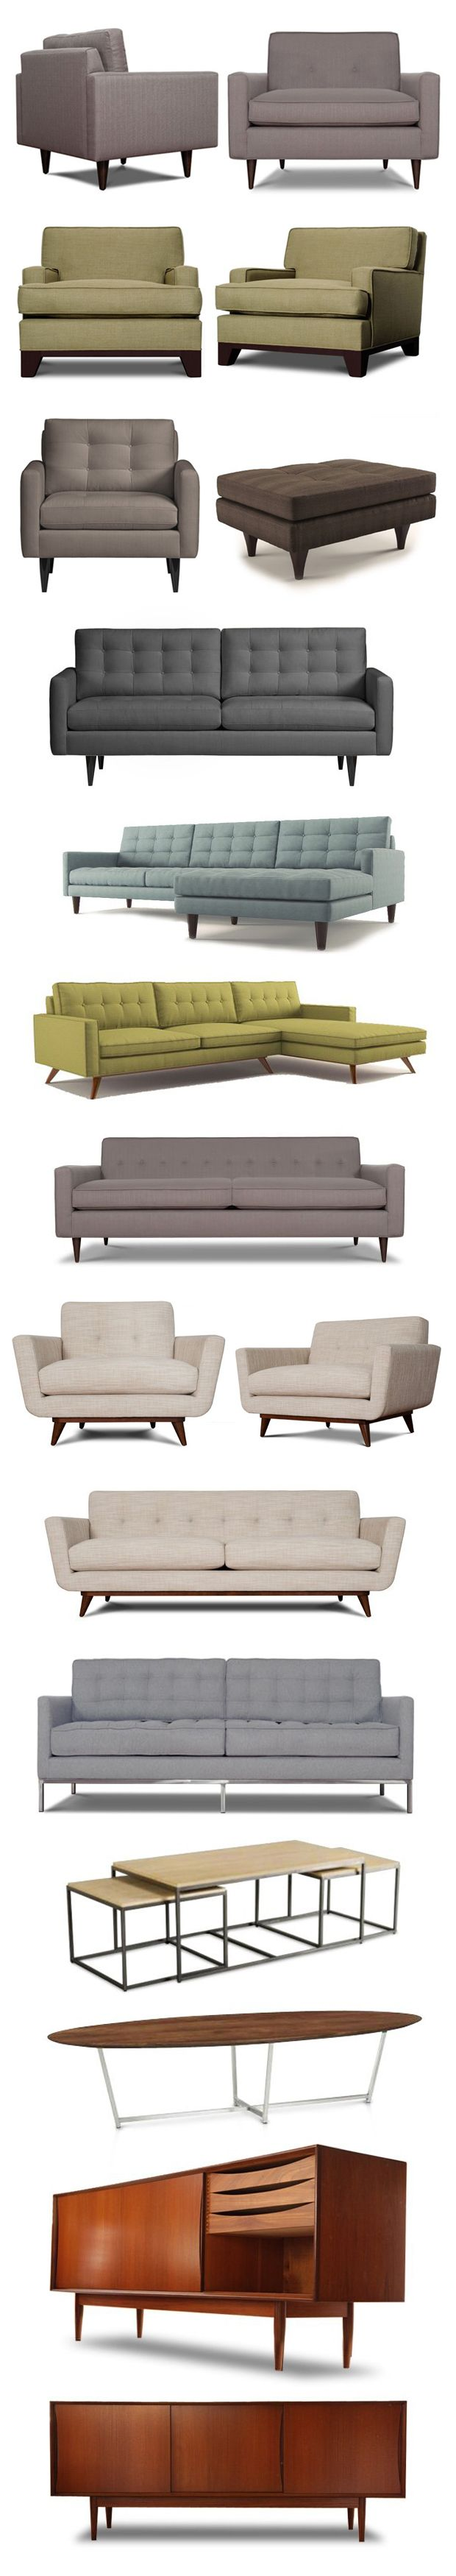 304 best SOFA images on Pinterest